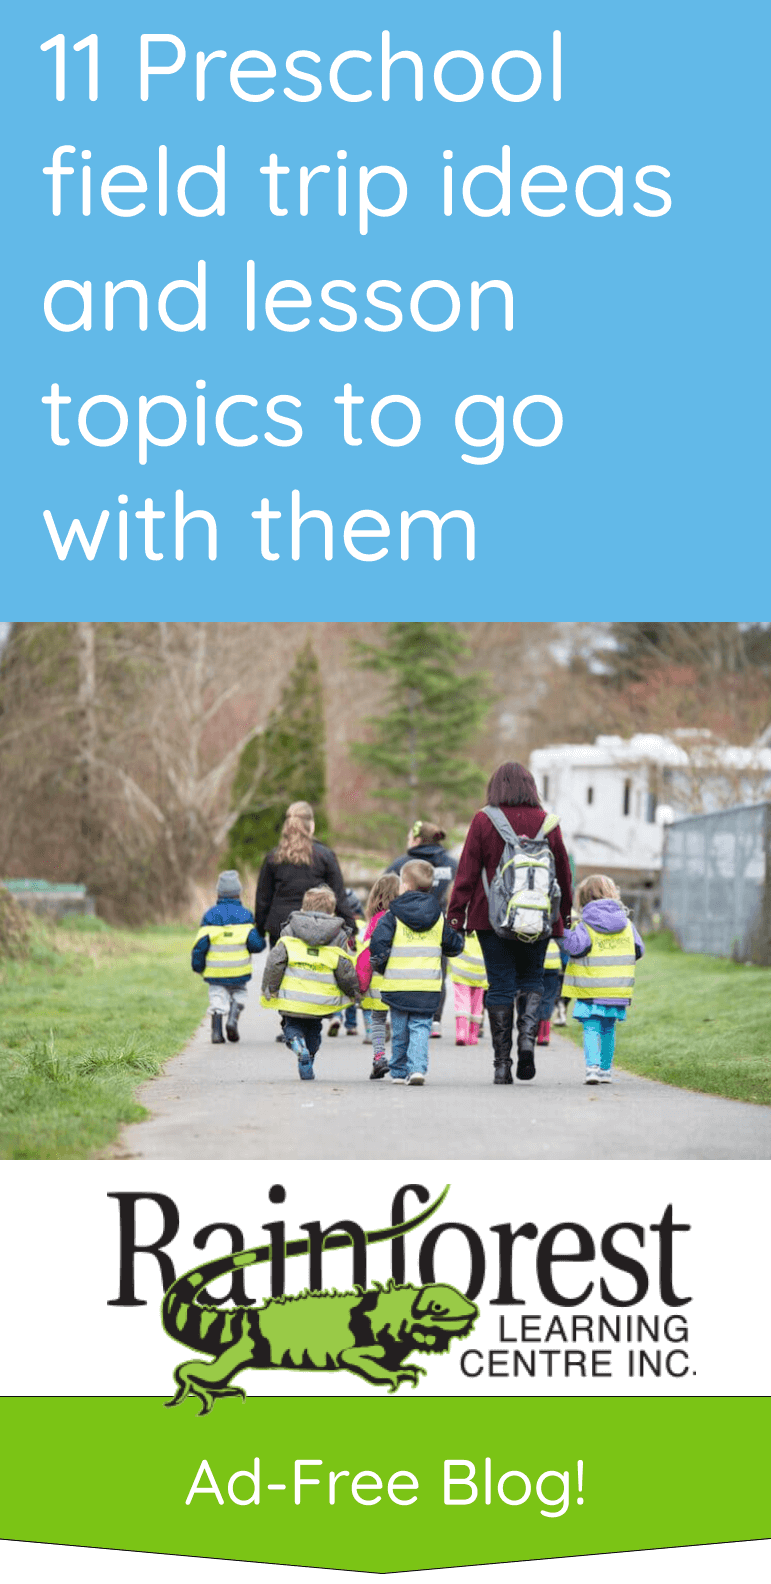 preschool field trip ideas and lessons to go with them - article pinterest image